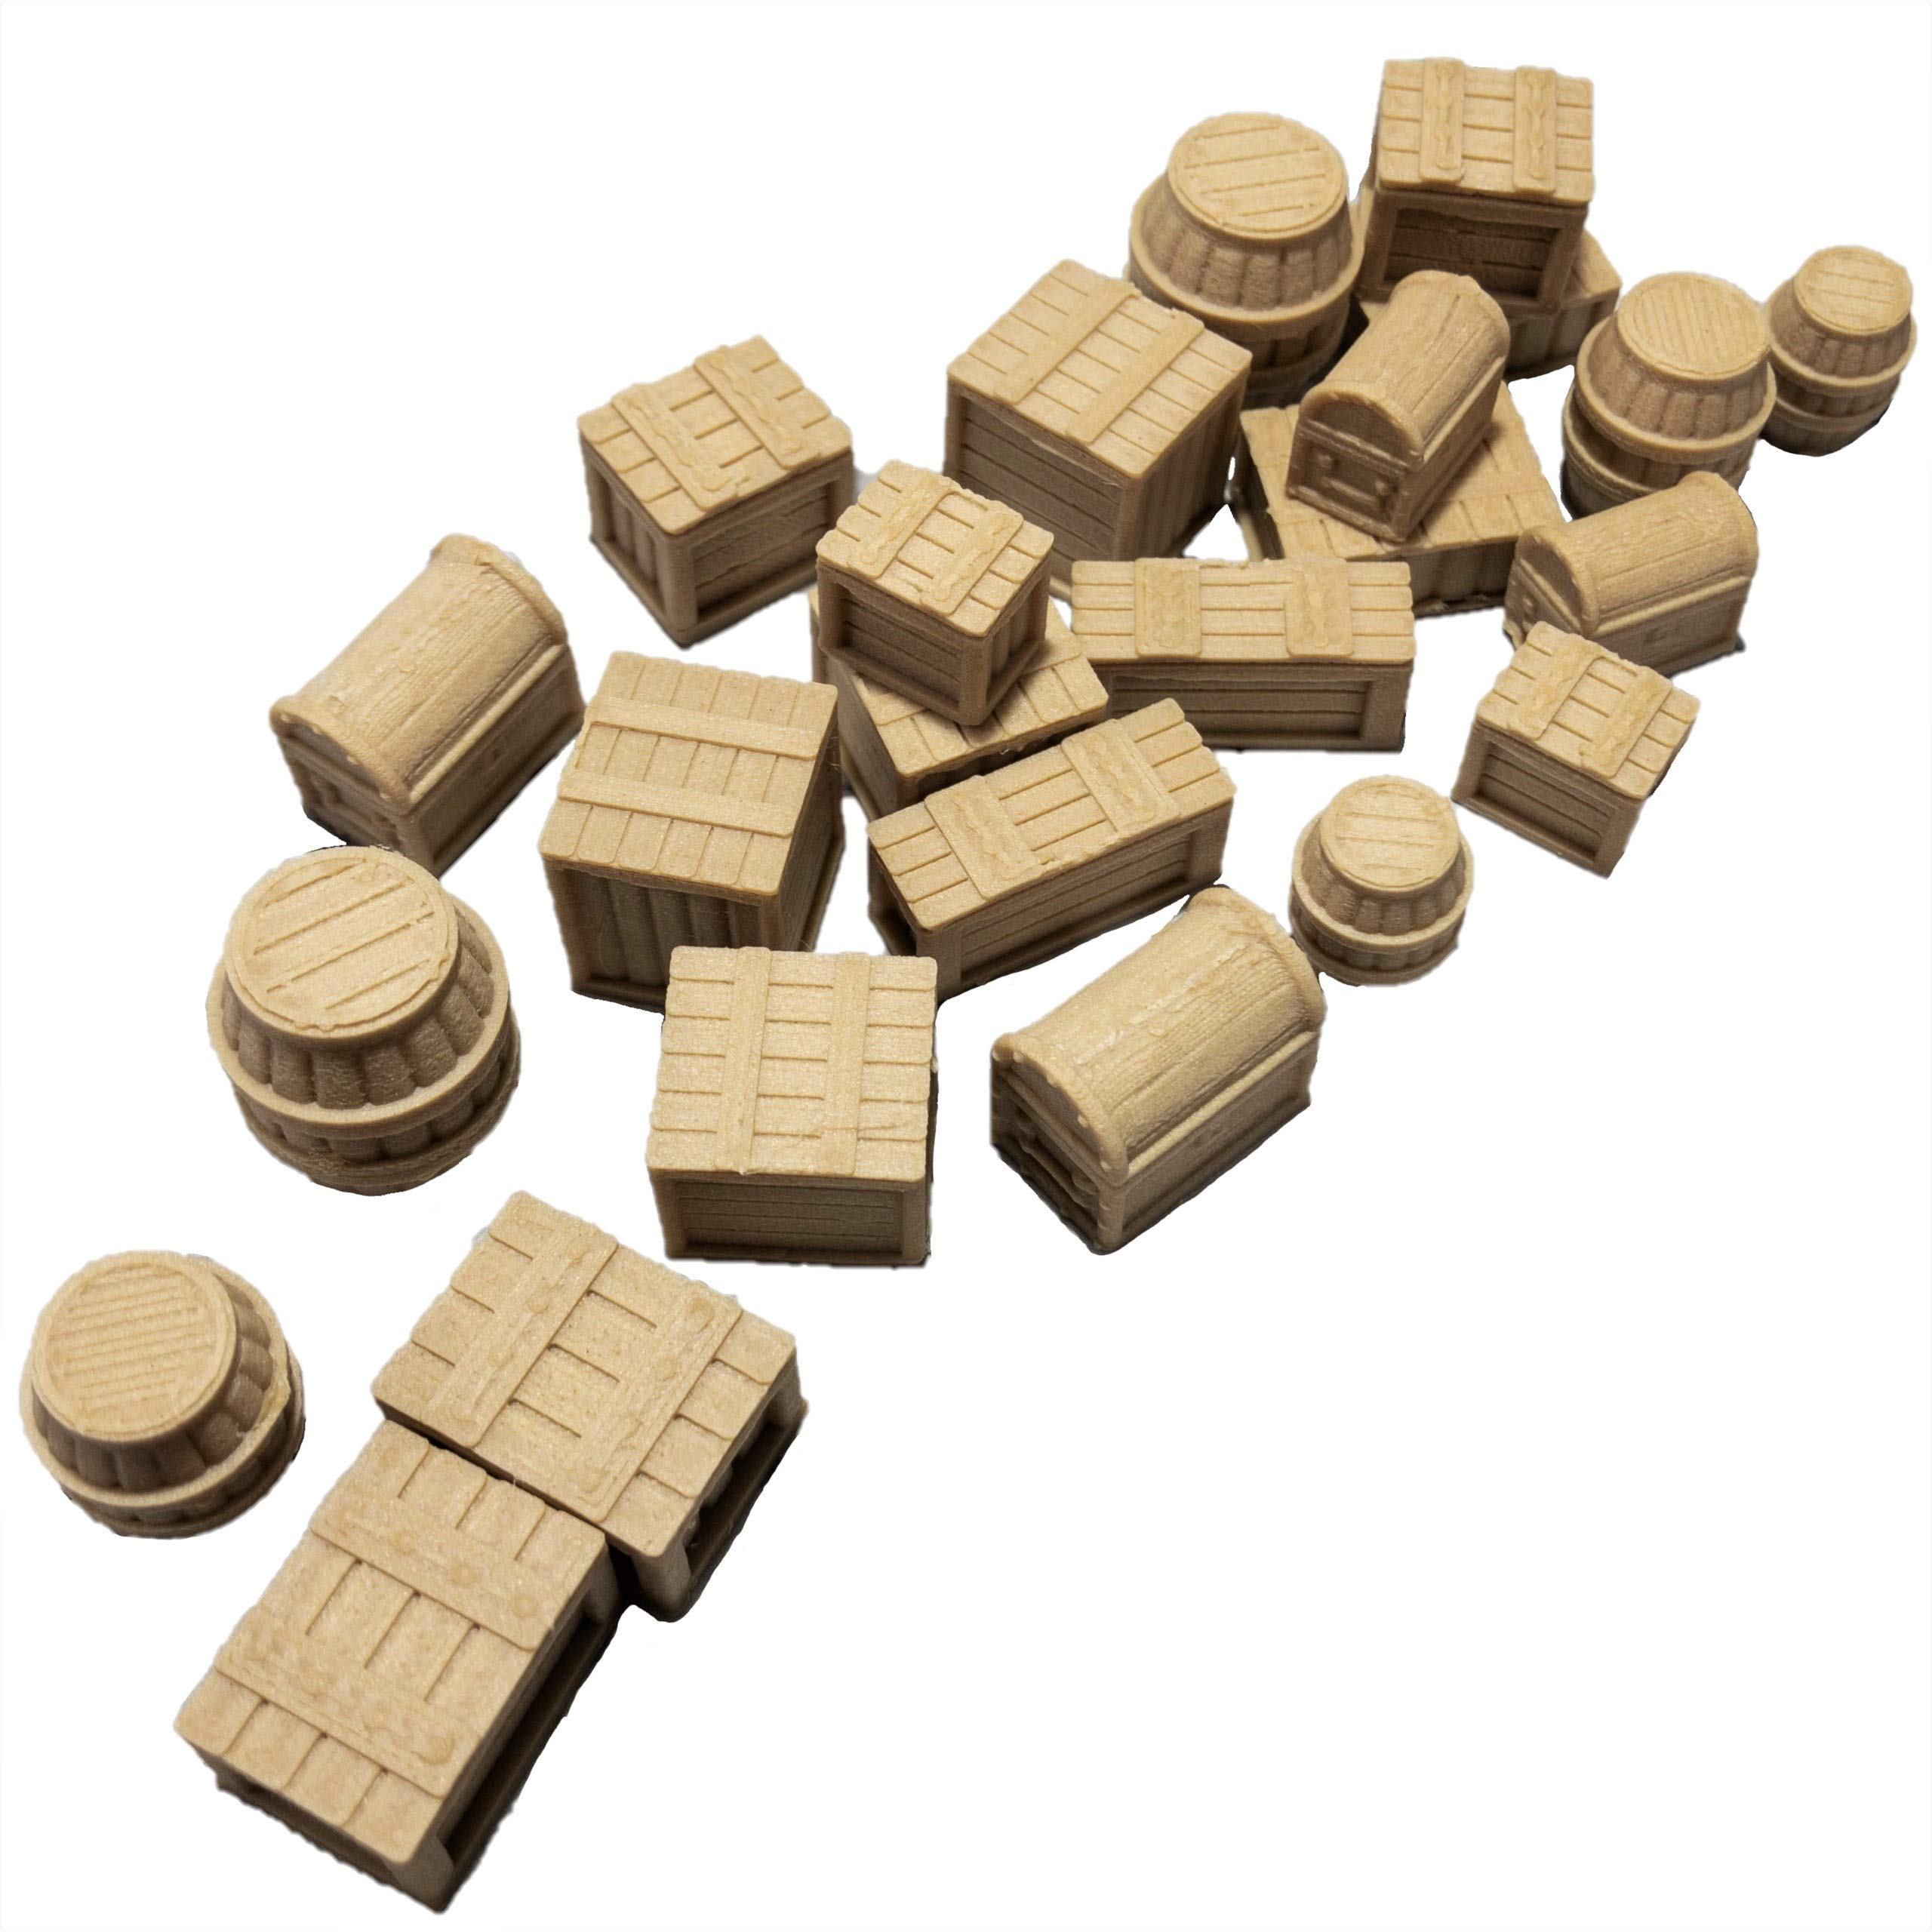 Pine Crates, Barrels and Chests - 28mm Gaming Terrain by Extruded Gaming